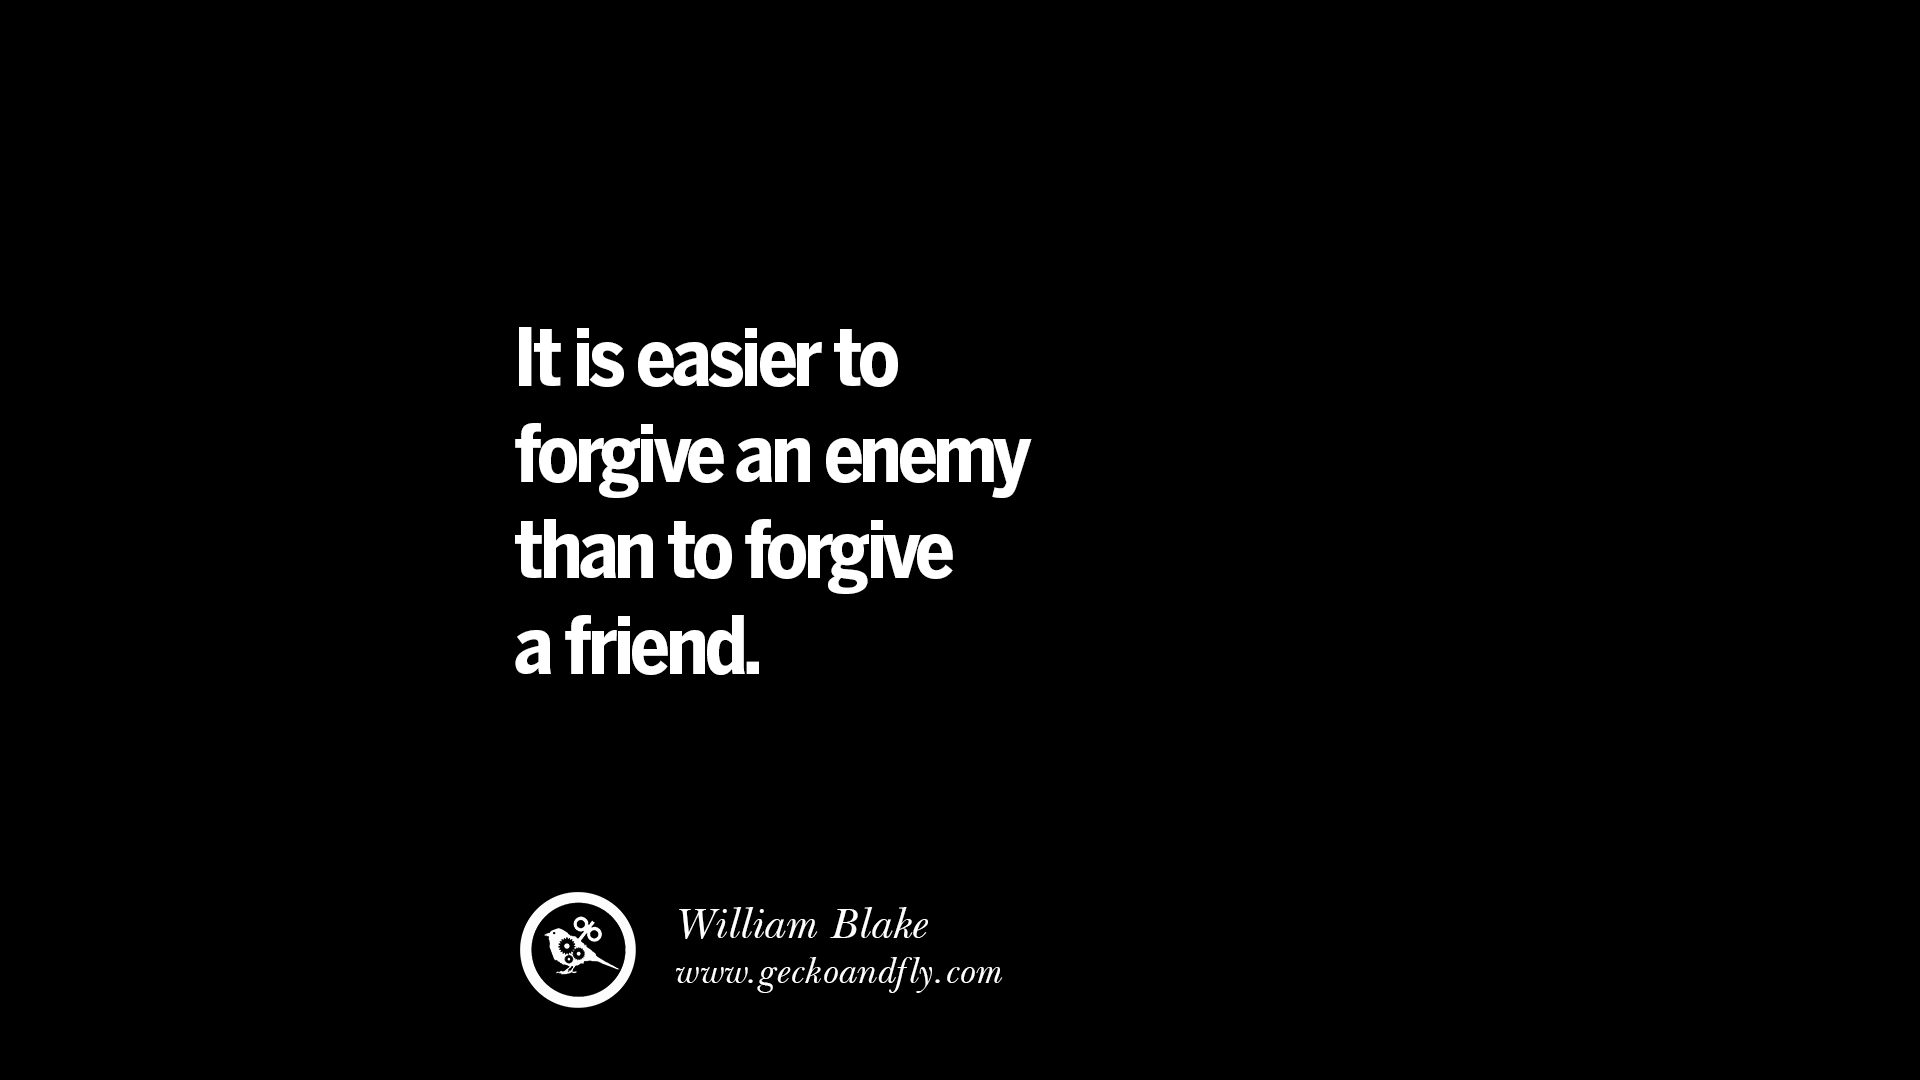 Quotes About Friendship Over 25 Quotes On Friendship Trust Love And Betrayal  Geckoandfly 2018